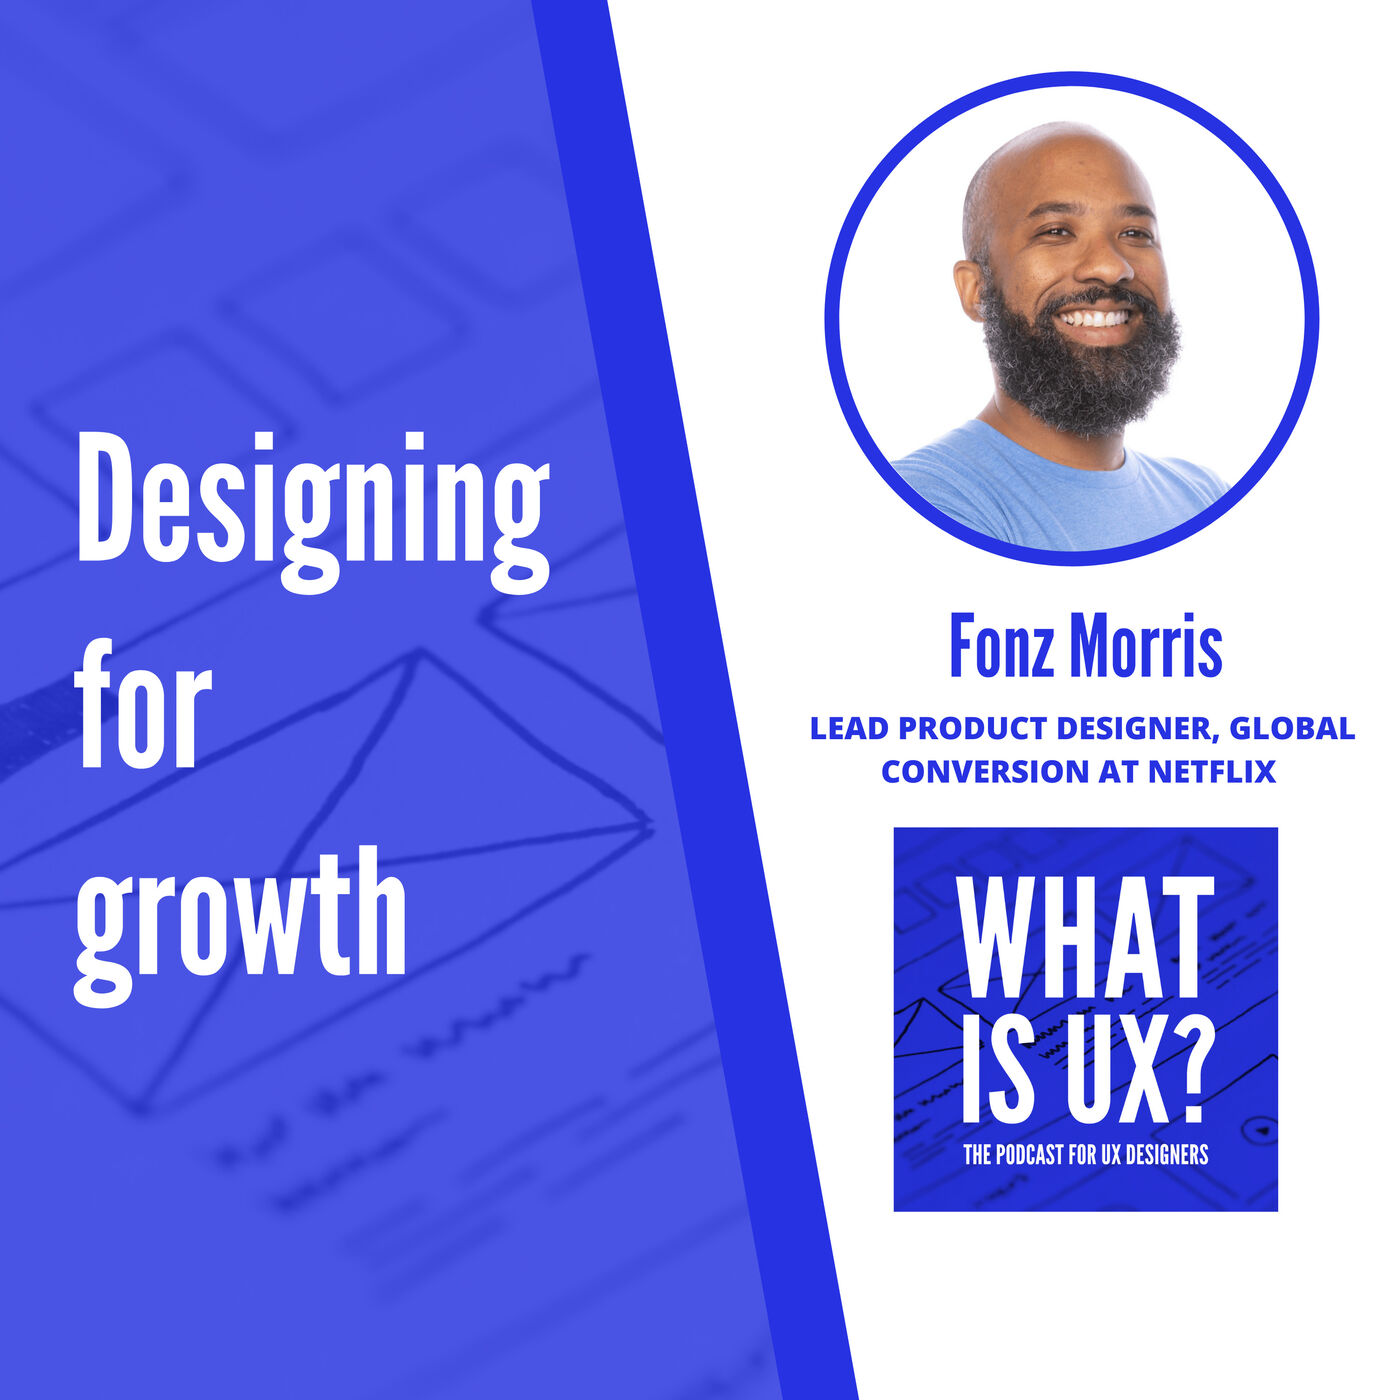 S1E8 Designing for Growth with Fonz Morris, Lead Product Designer, Global Conversion at Netflix